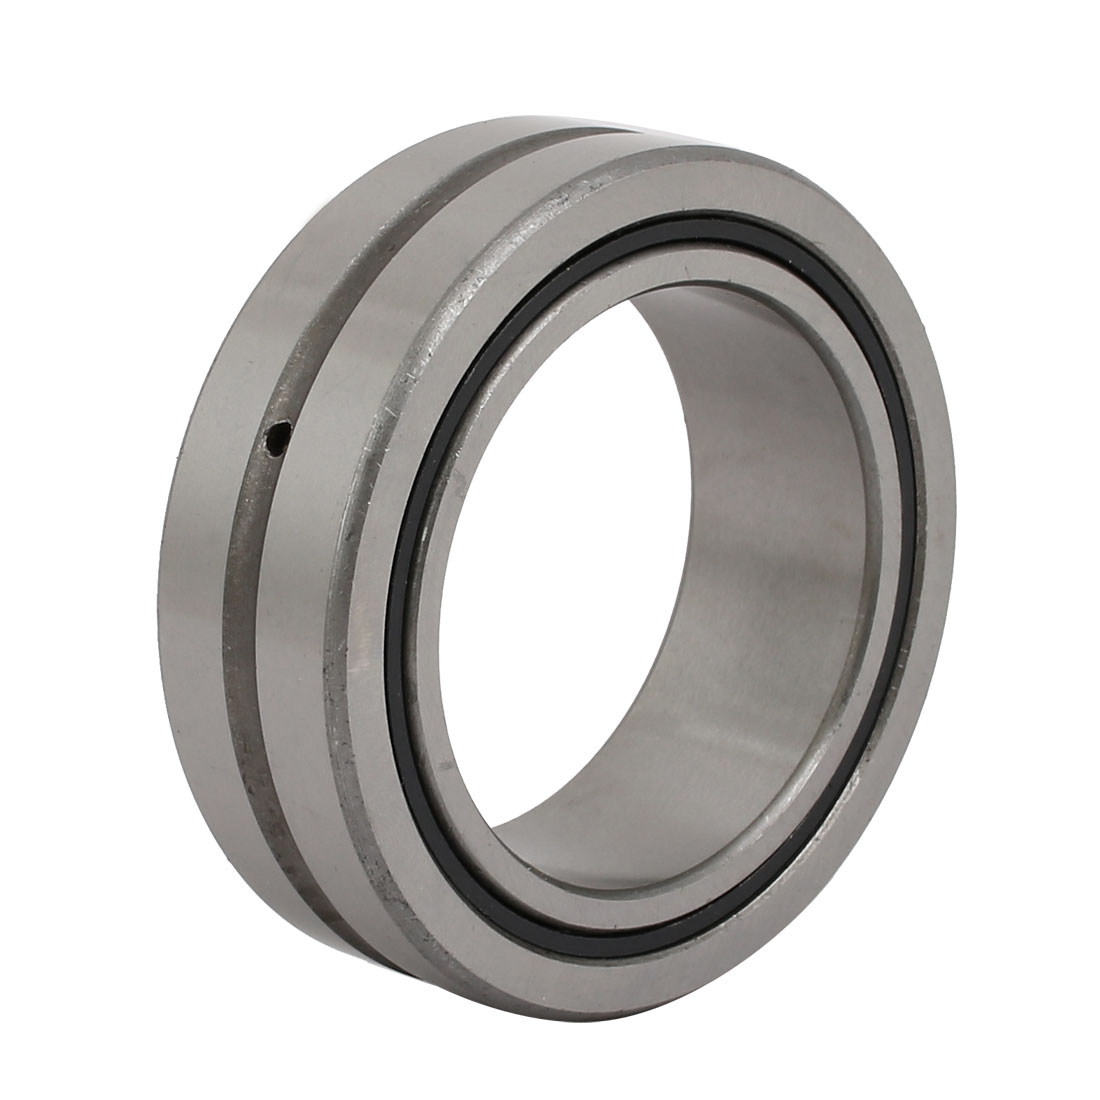 NA4911 80mm x 55mm x 25mm Drawn Cup Needle Roller Bearing w Inner Ring